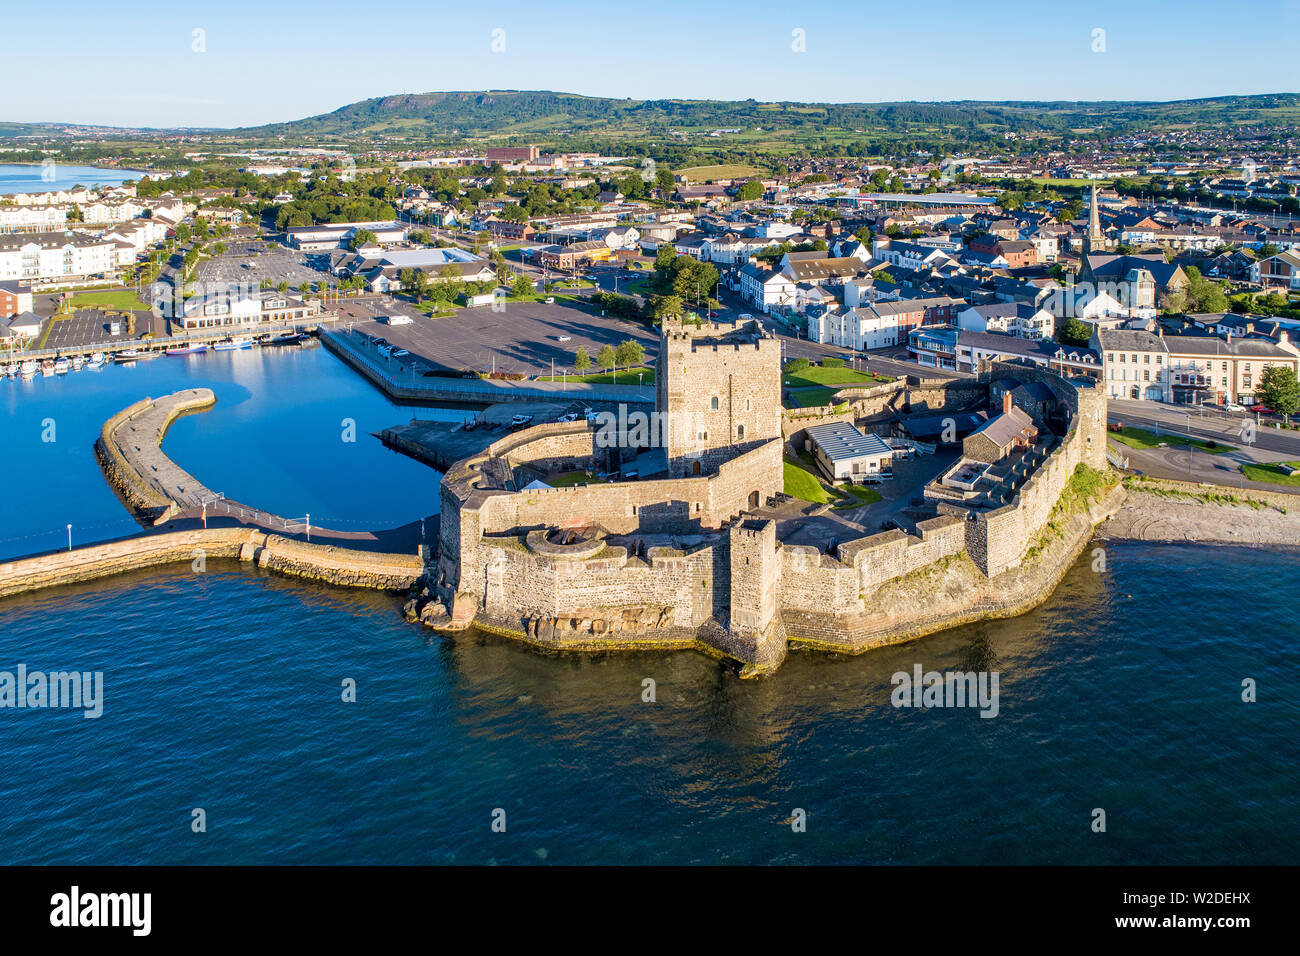 Medieval Norman Castle in Carrickfergus near Belfast in sunrise light. Aerial view with marina, yachts, parking and town - Stock Image